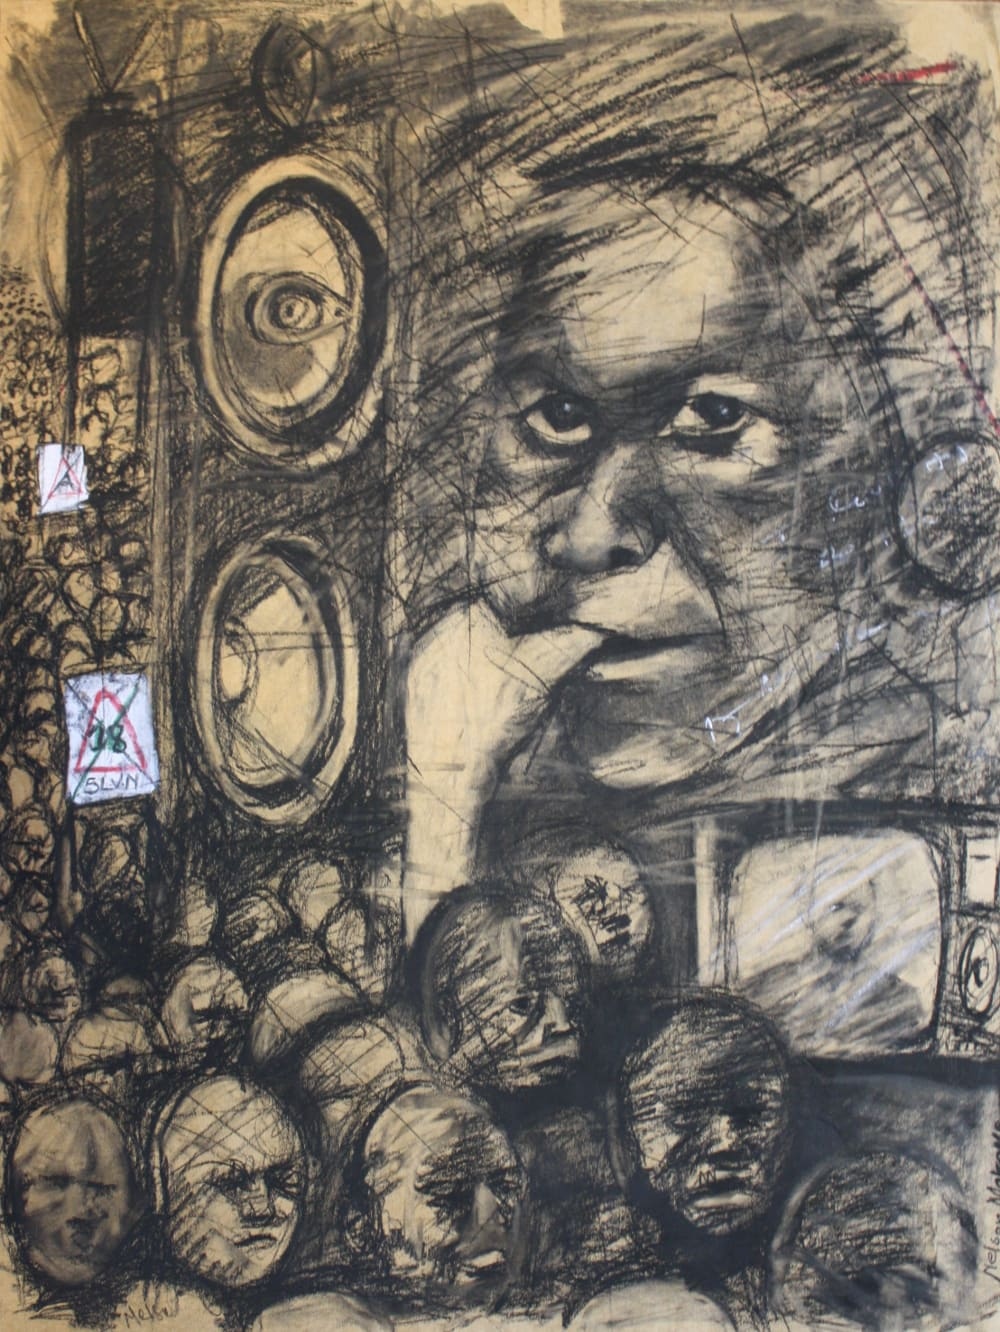 Nelson Makamo, Untitled, 2006